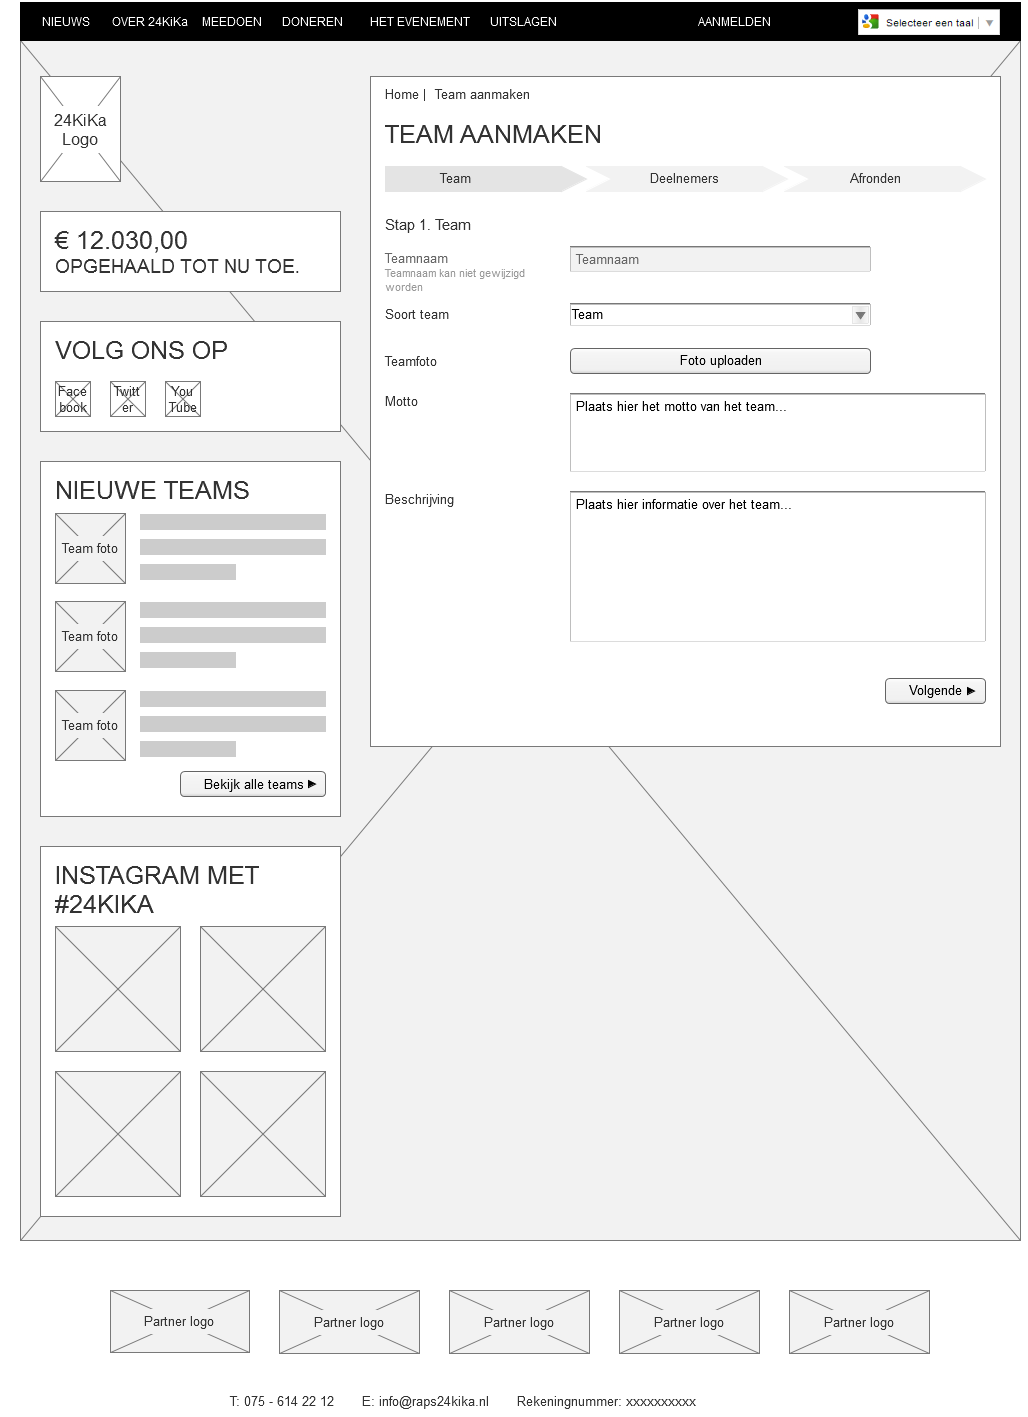 vanity-tracy_project_2013_24kika_wireframes_06_subscribe-team_step-1